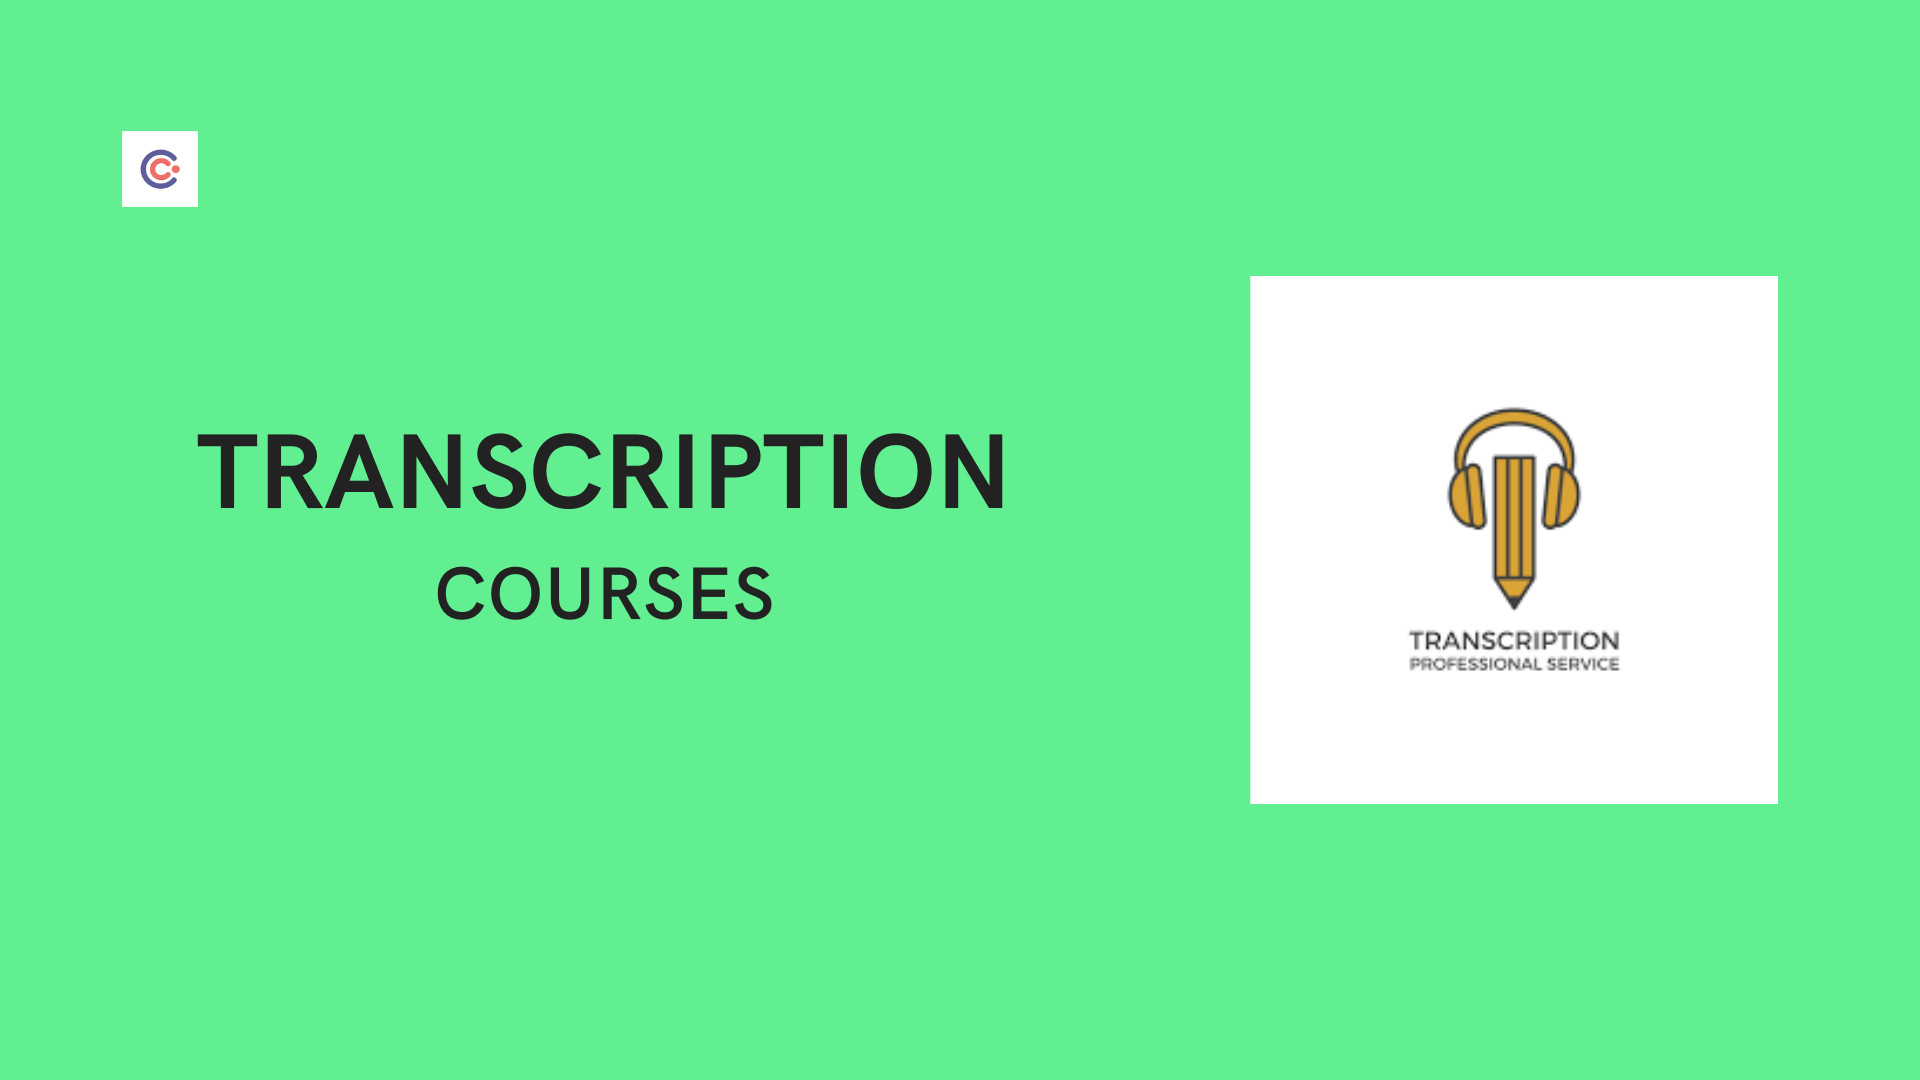 5 Best Transcription Courses & Classes - Learn Transcription Online